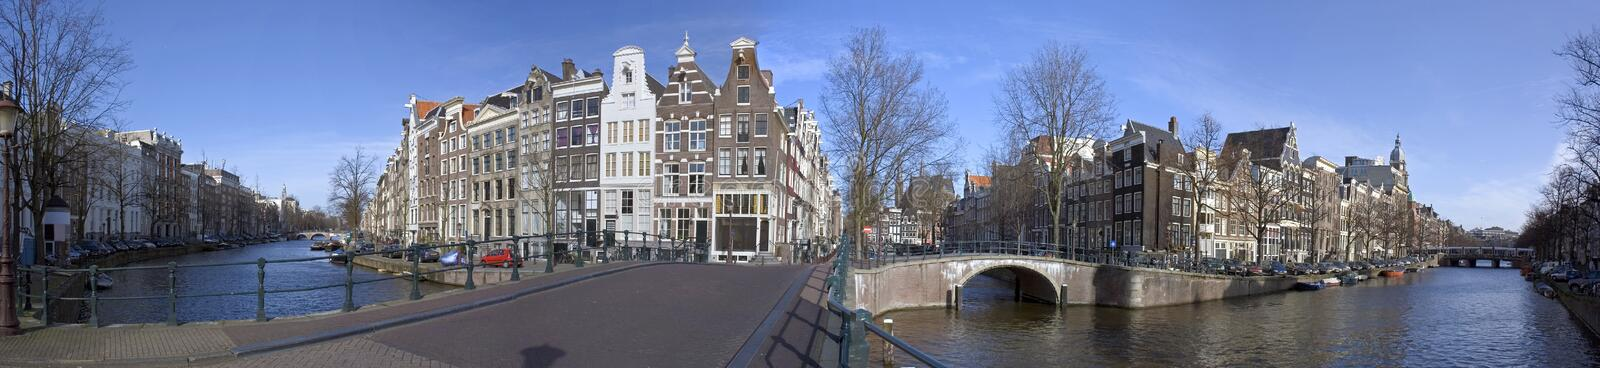 Download Amsterdam Keizersgracht-Leidsegracht In Holland Stock Image - Image: 4523891